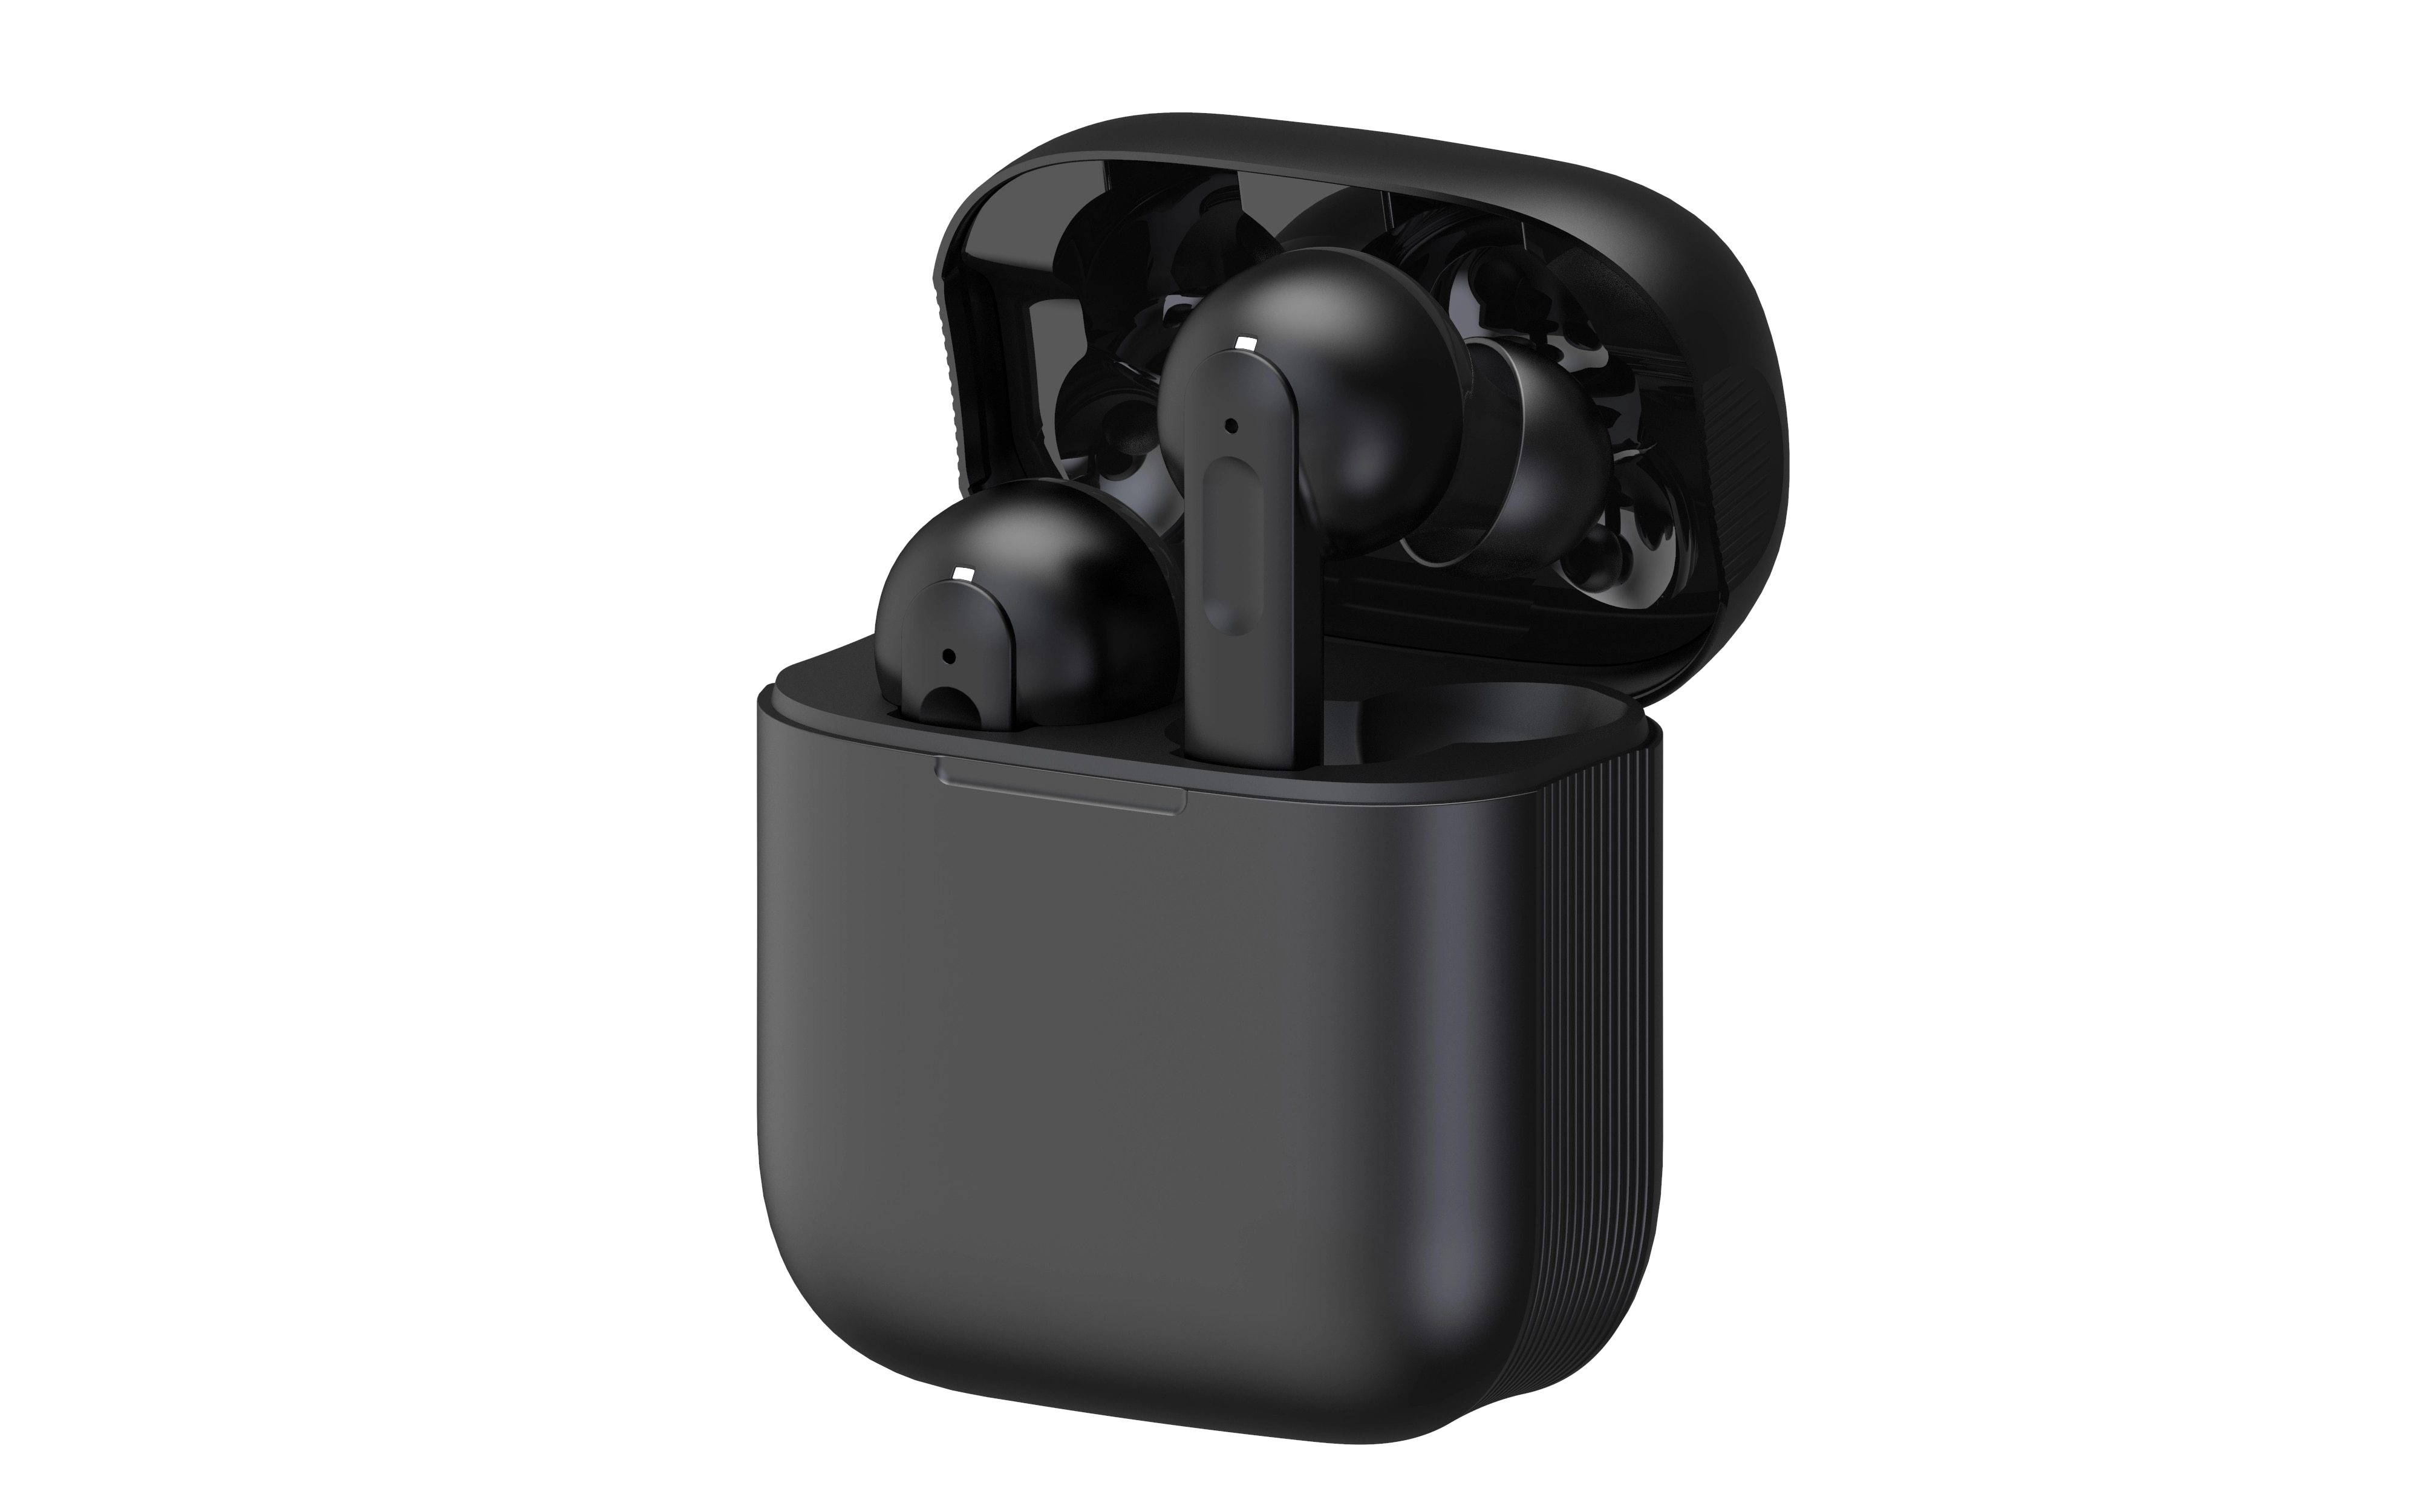 ANC Earbuds TWS Wireless Bluetooth Earphone Sport Stereo Earbuds Active Noise Canceling Headset True Wireless Earbuds ANC TWS enlarge